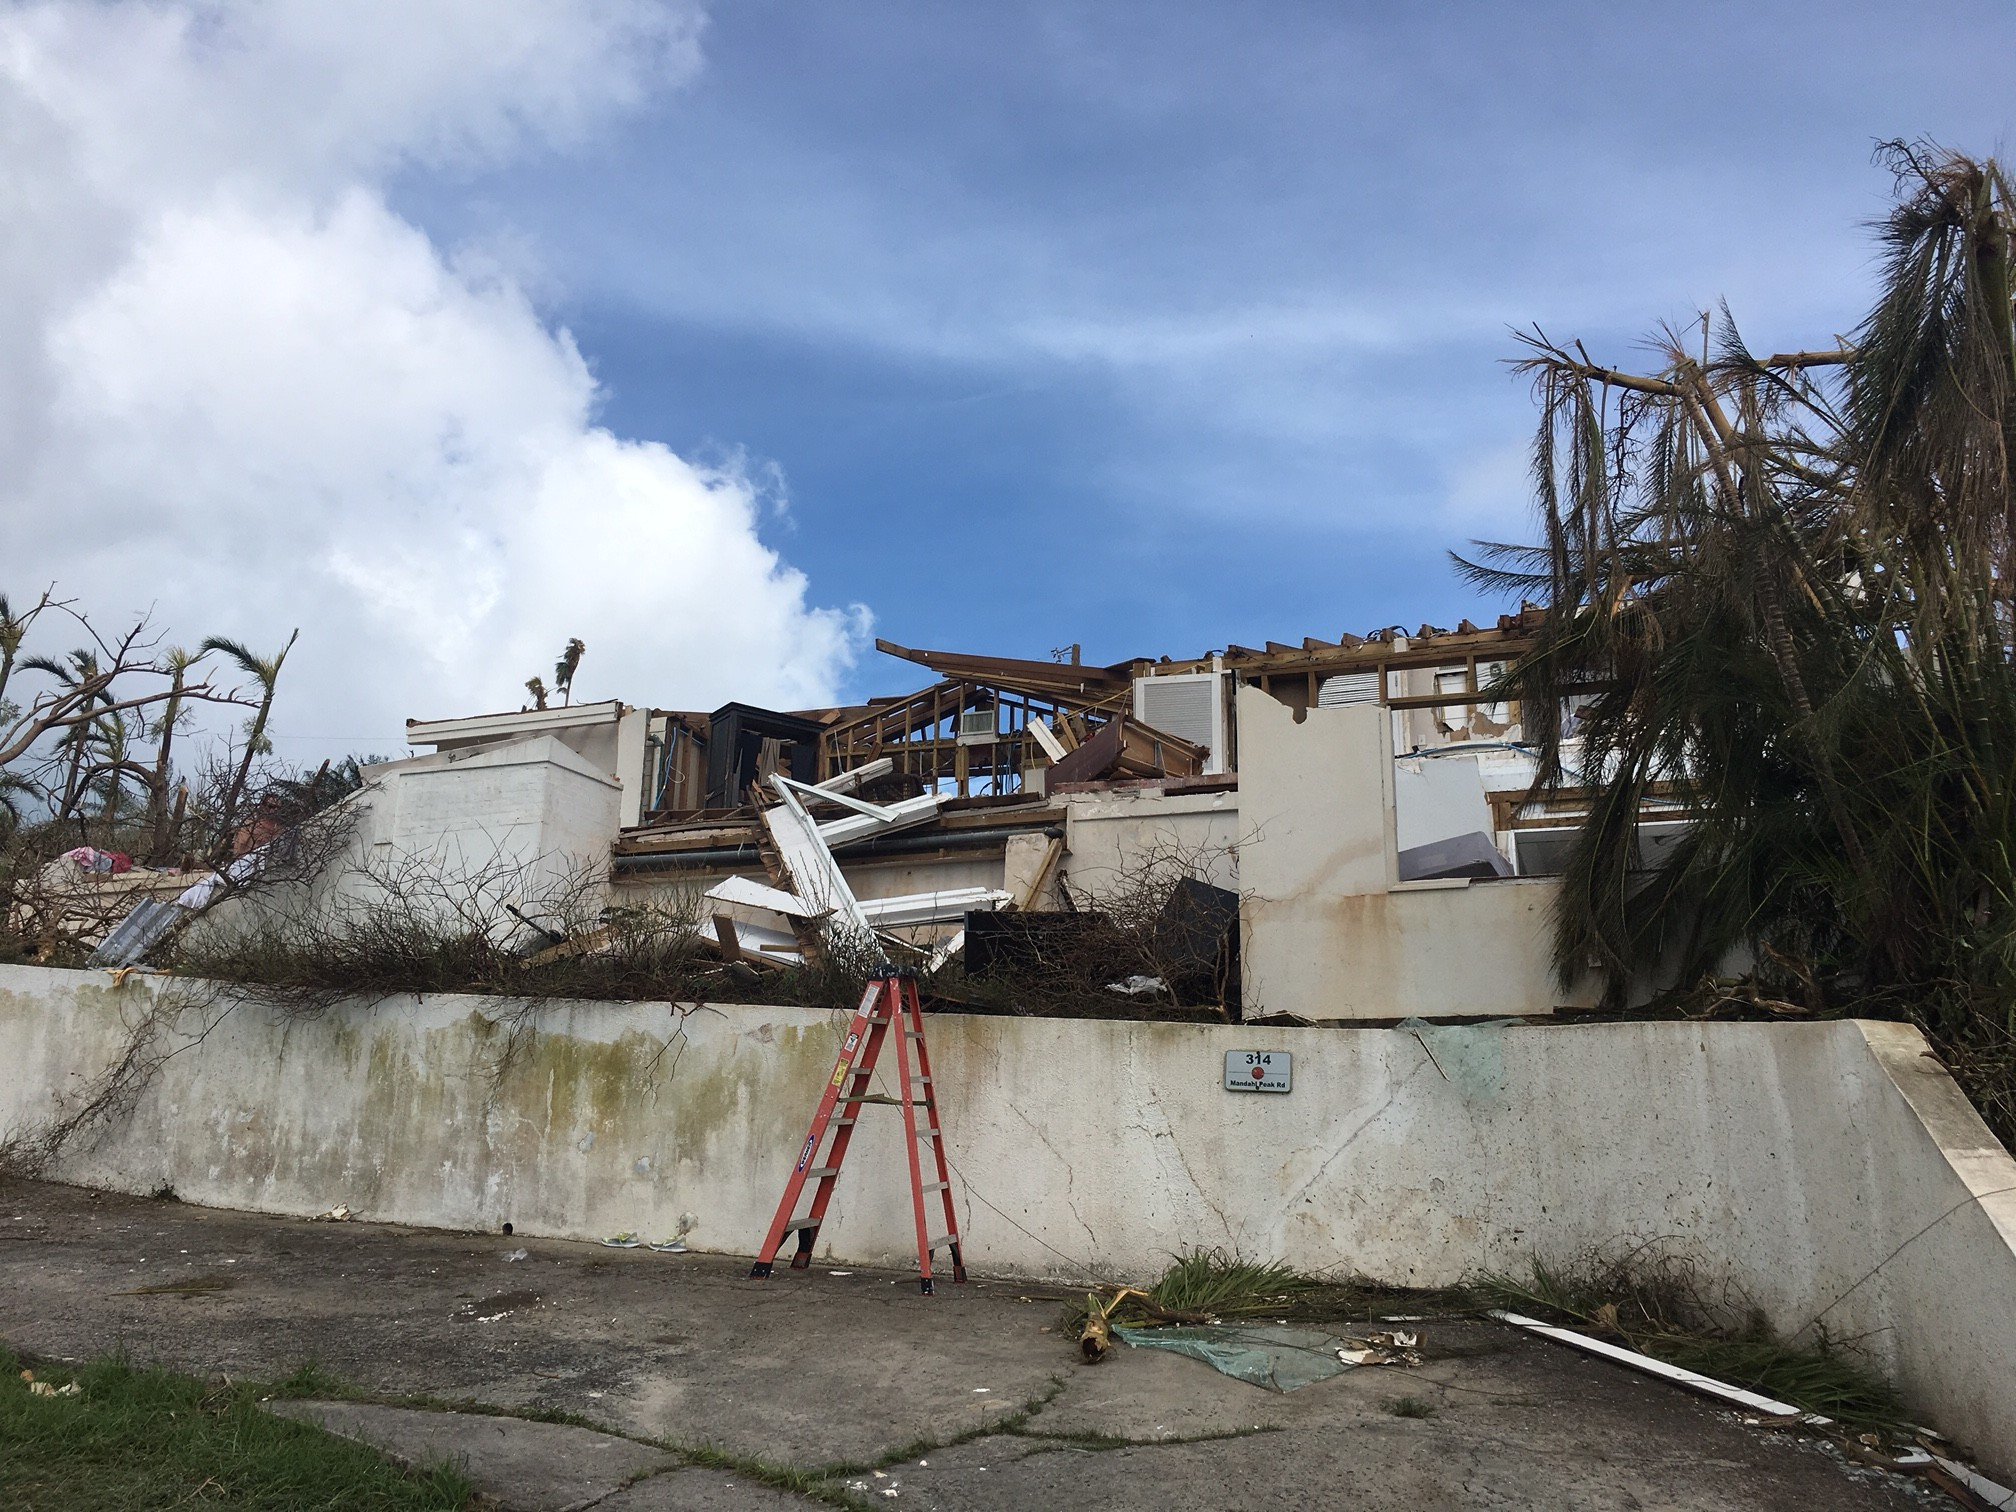 Jennie Rabinowitz, formerly of Merrick and now a resident of St. Thomas, in the U.S. Virgin Islands, witnessed the devastation wrought by Hurricane Irma firsthand before fleeing to Puerto Rico.